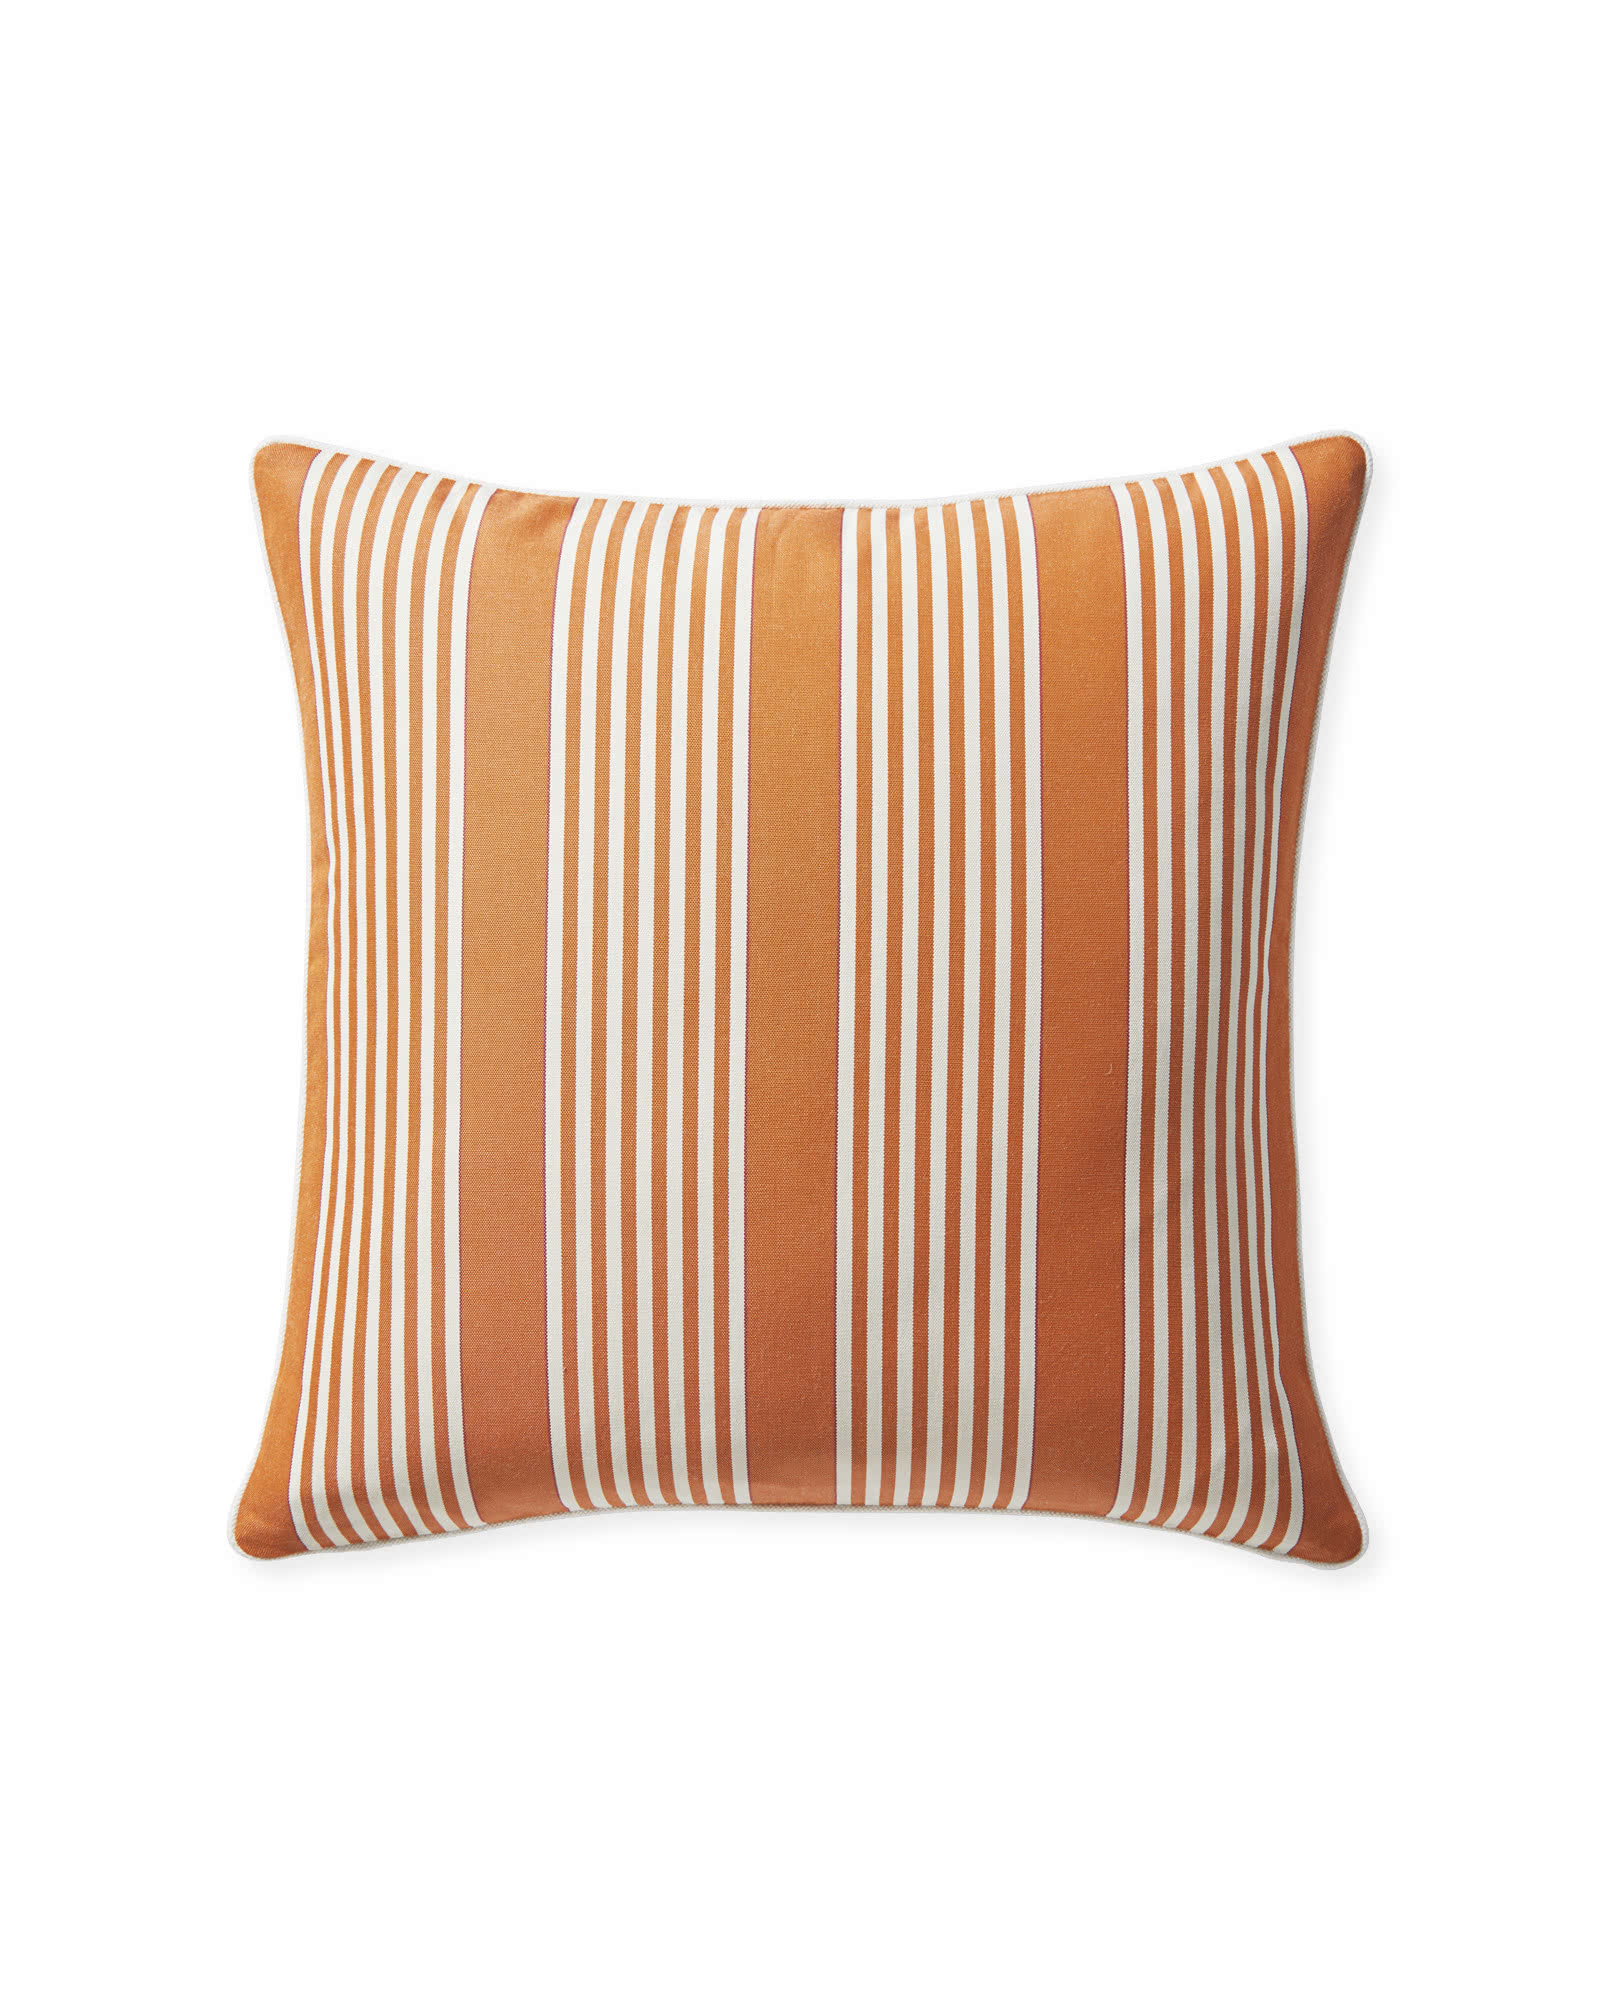 Perennials® Cabana Stripe Outdoor Pillow Cover, Mandarin